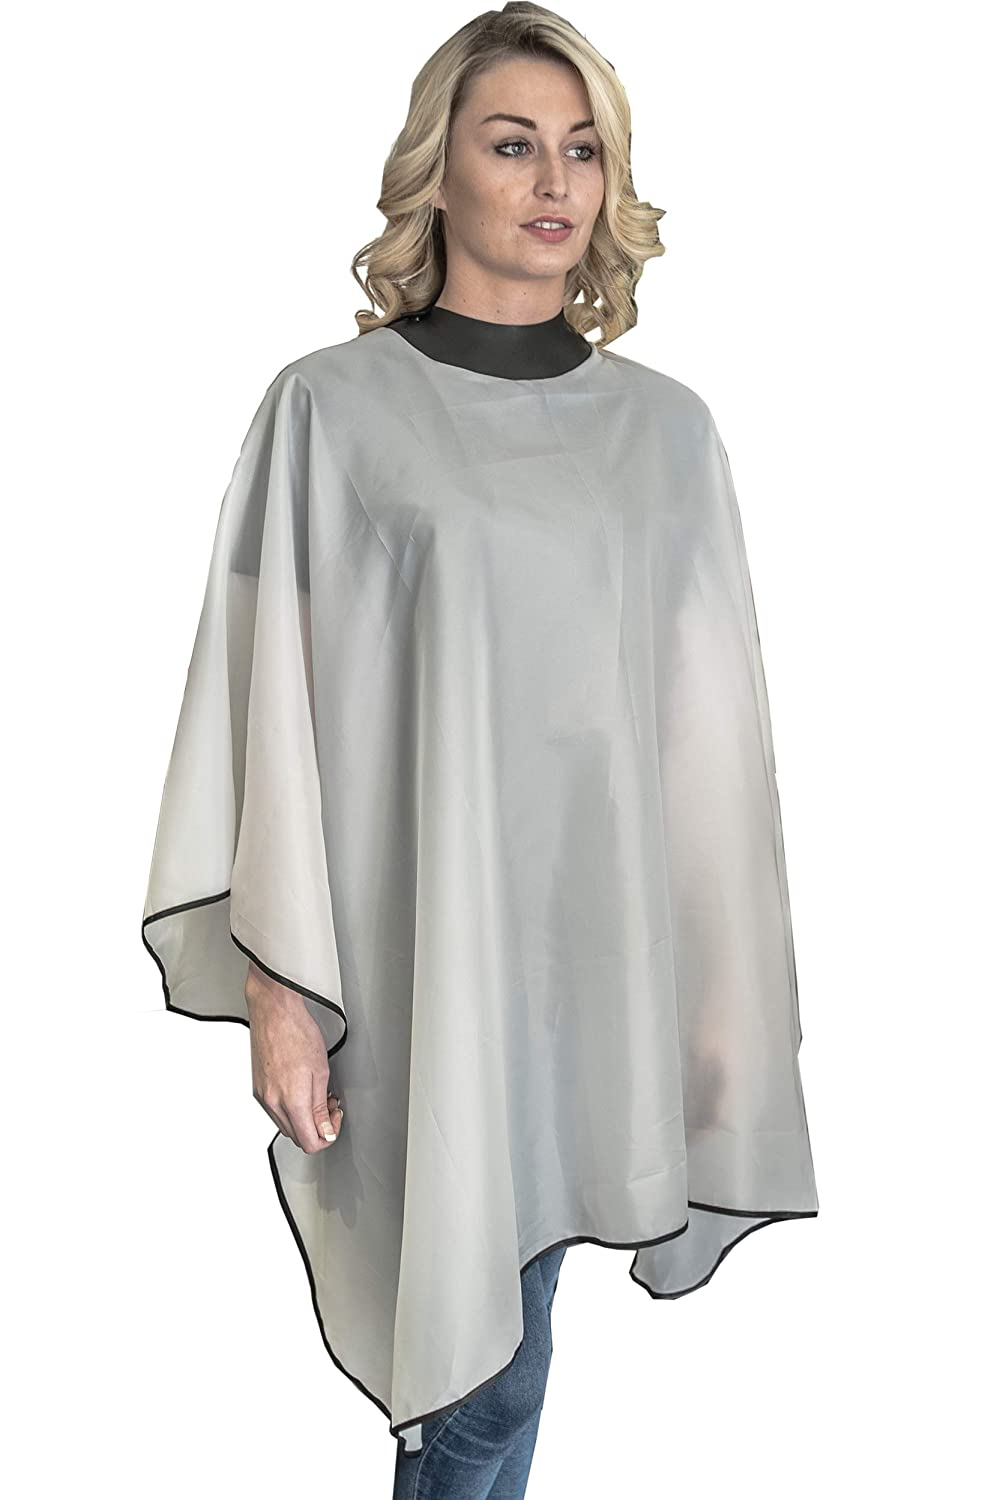 NeoCape Standard Hairdressing Gown White - barber cape with a built in neoprene collar